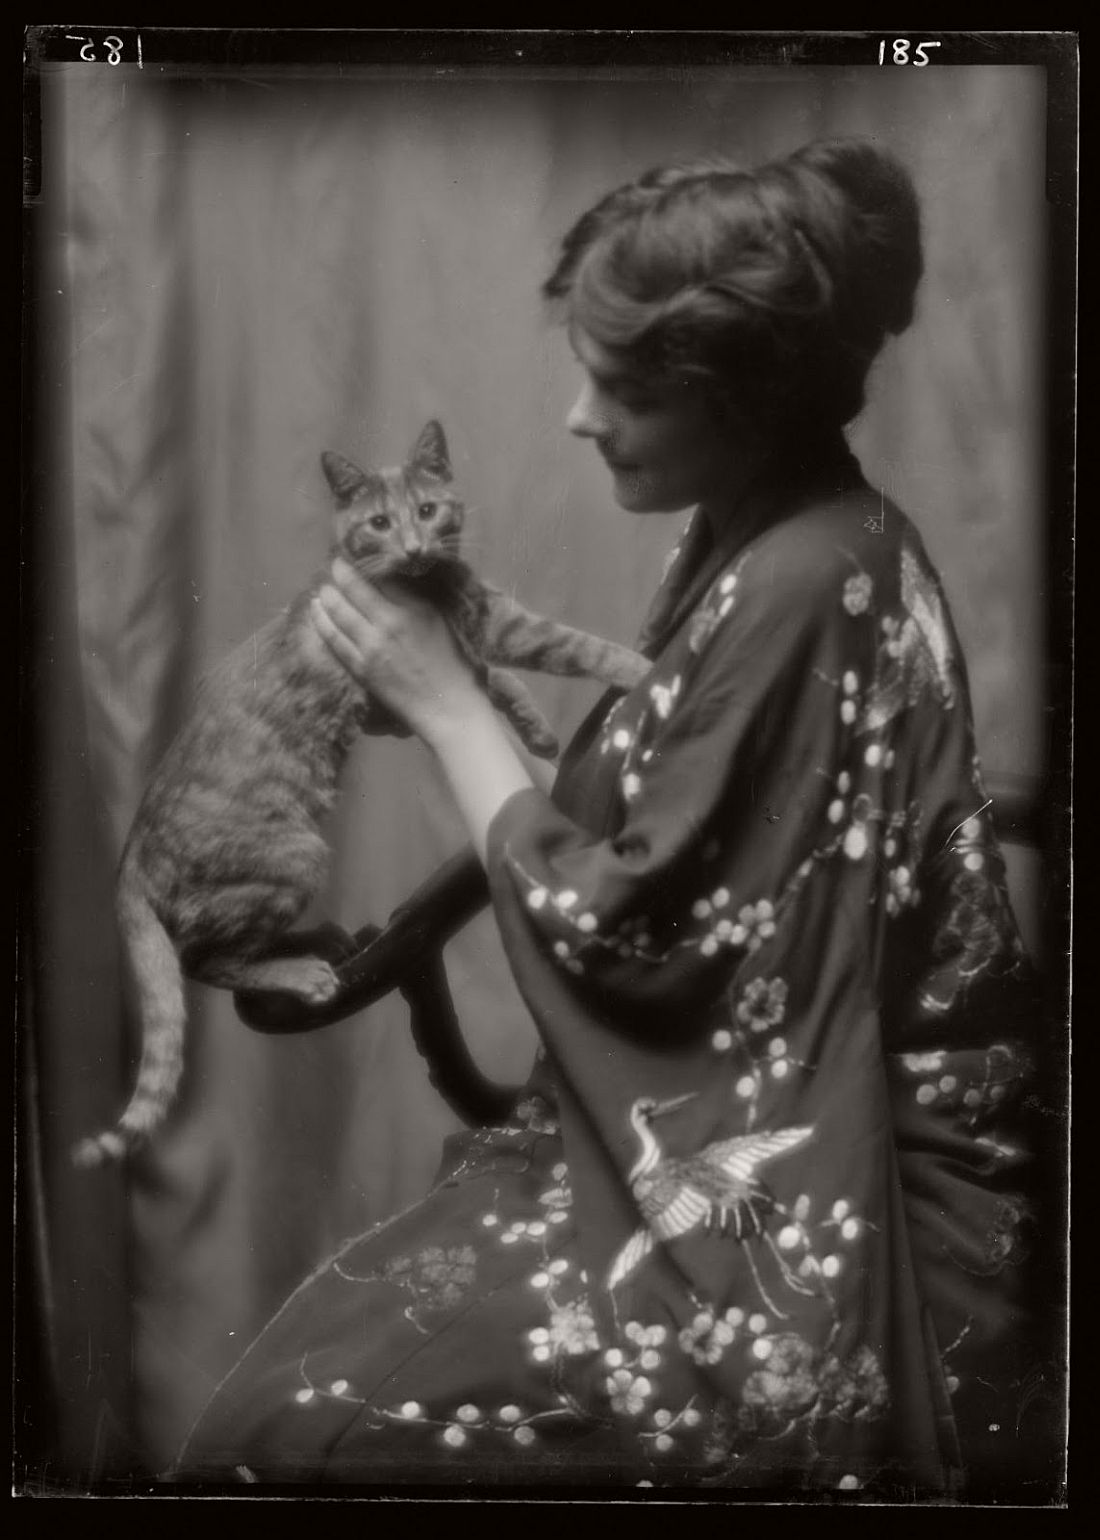 arnold-genthe-1910s-vintage-studio-portraits-of-girls-with-cat-13